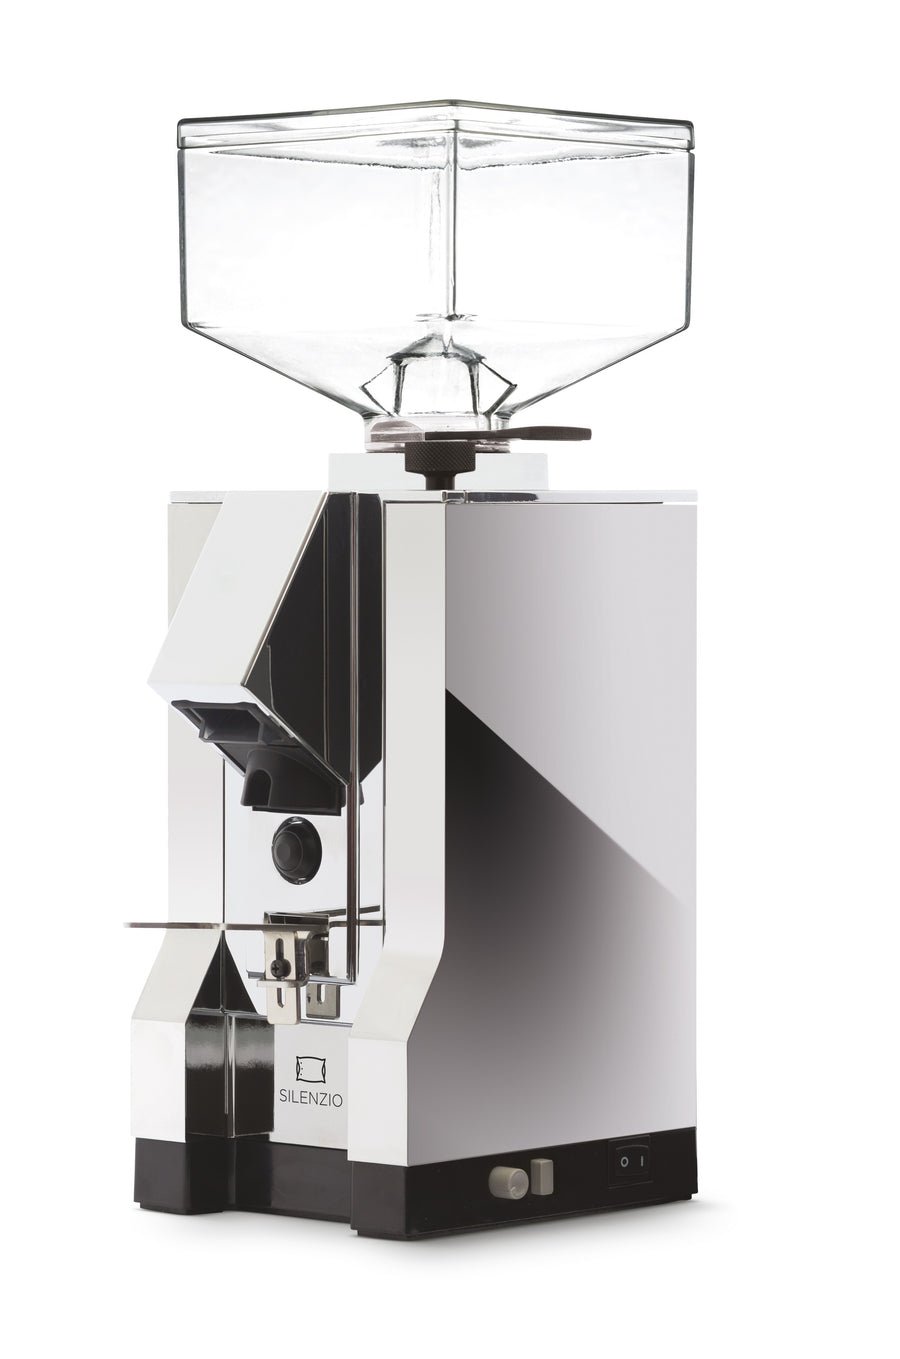 Chrome Mignon Silenzio Espresso Grinder by Eureka - Clandestine Coffee Co.